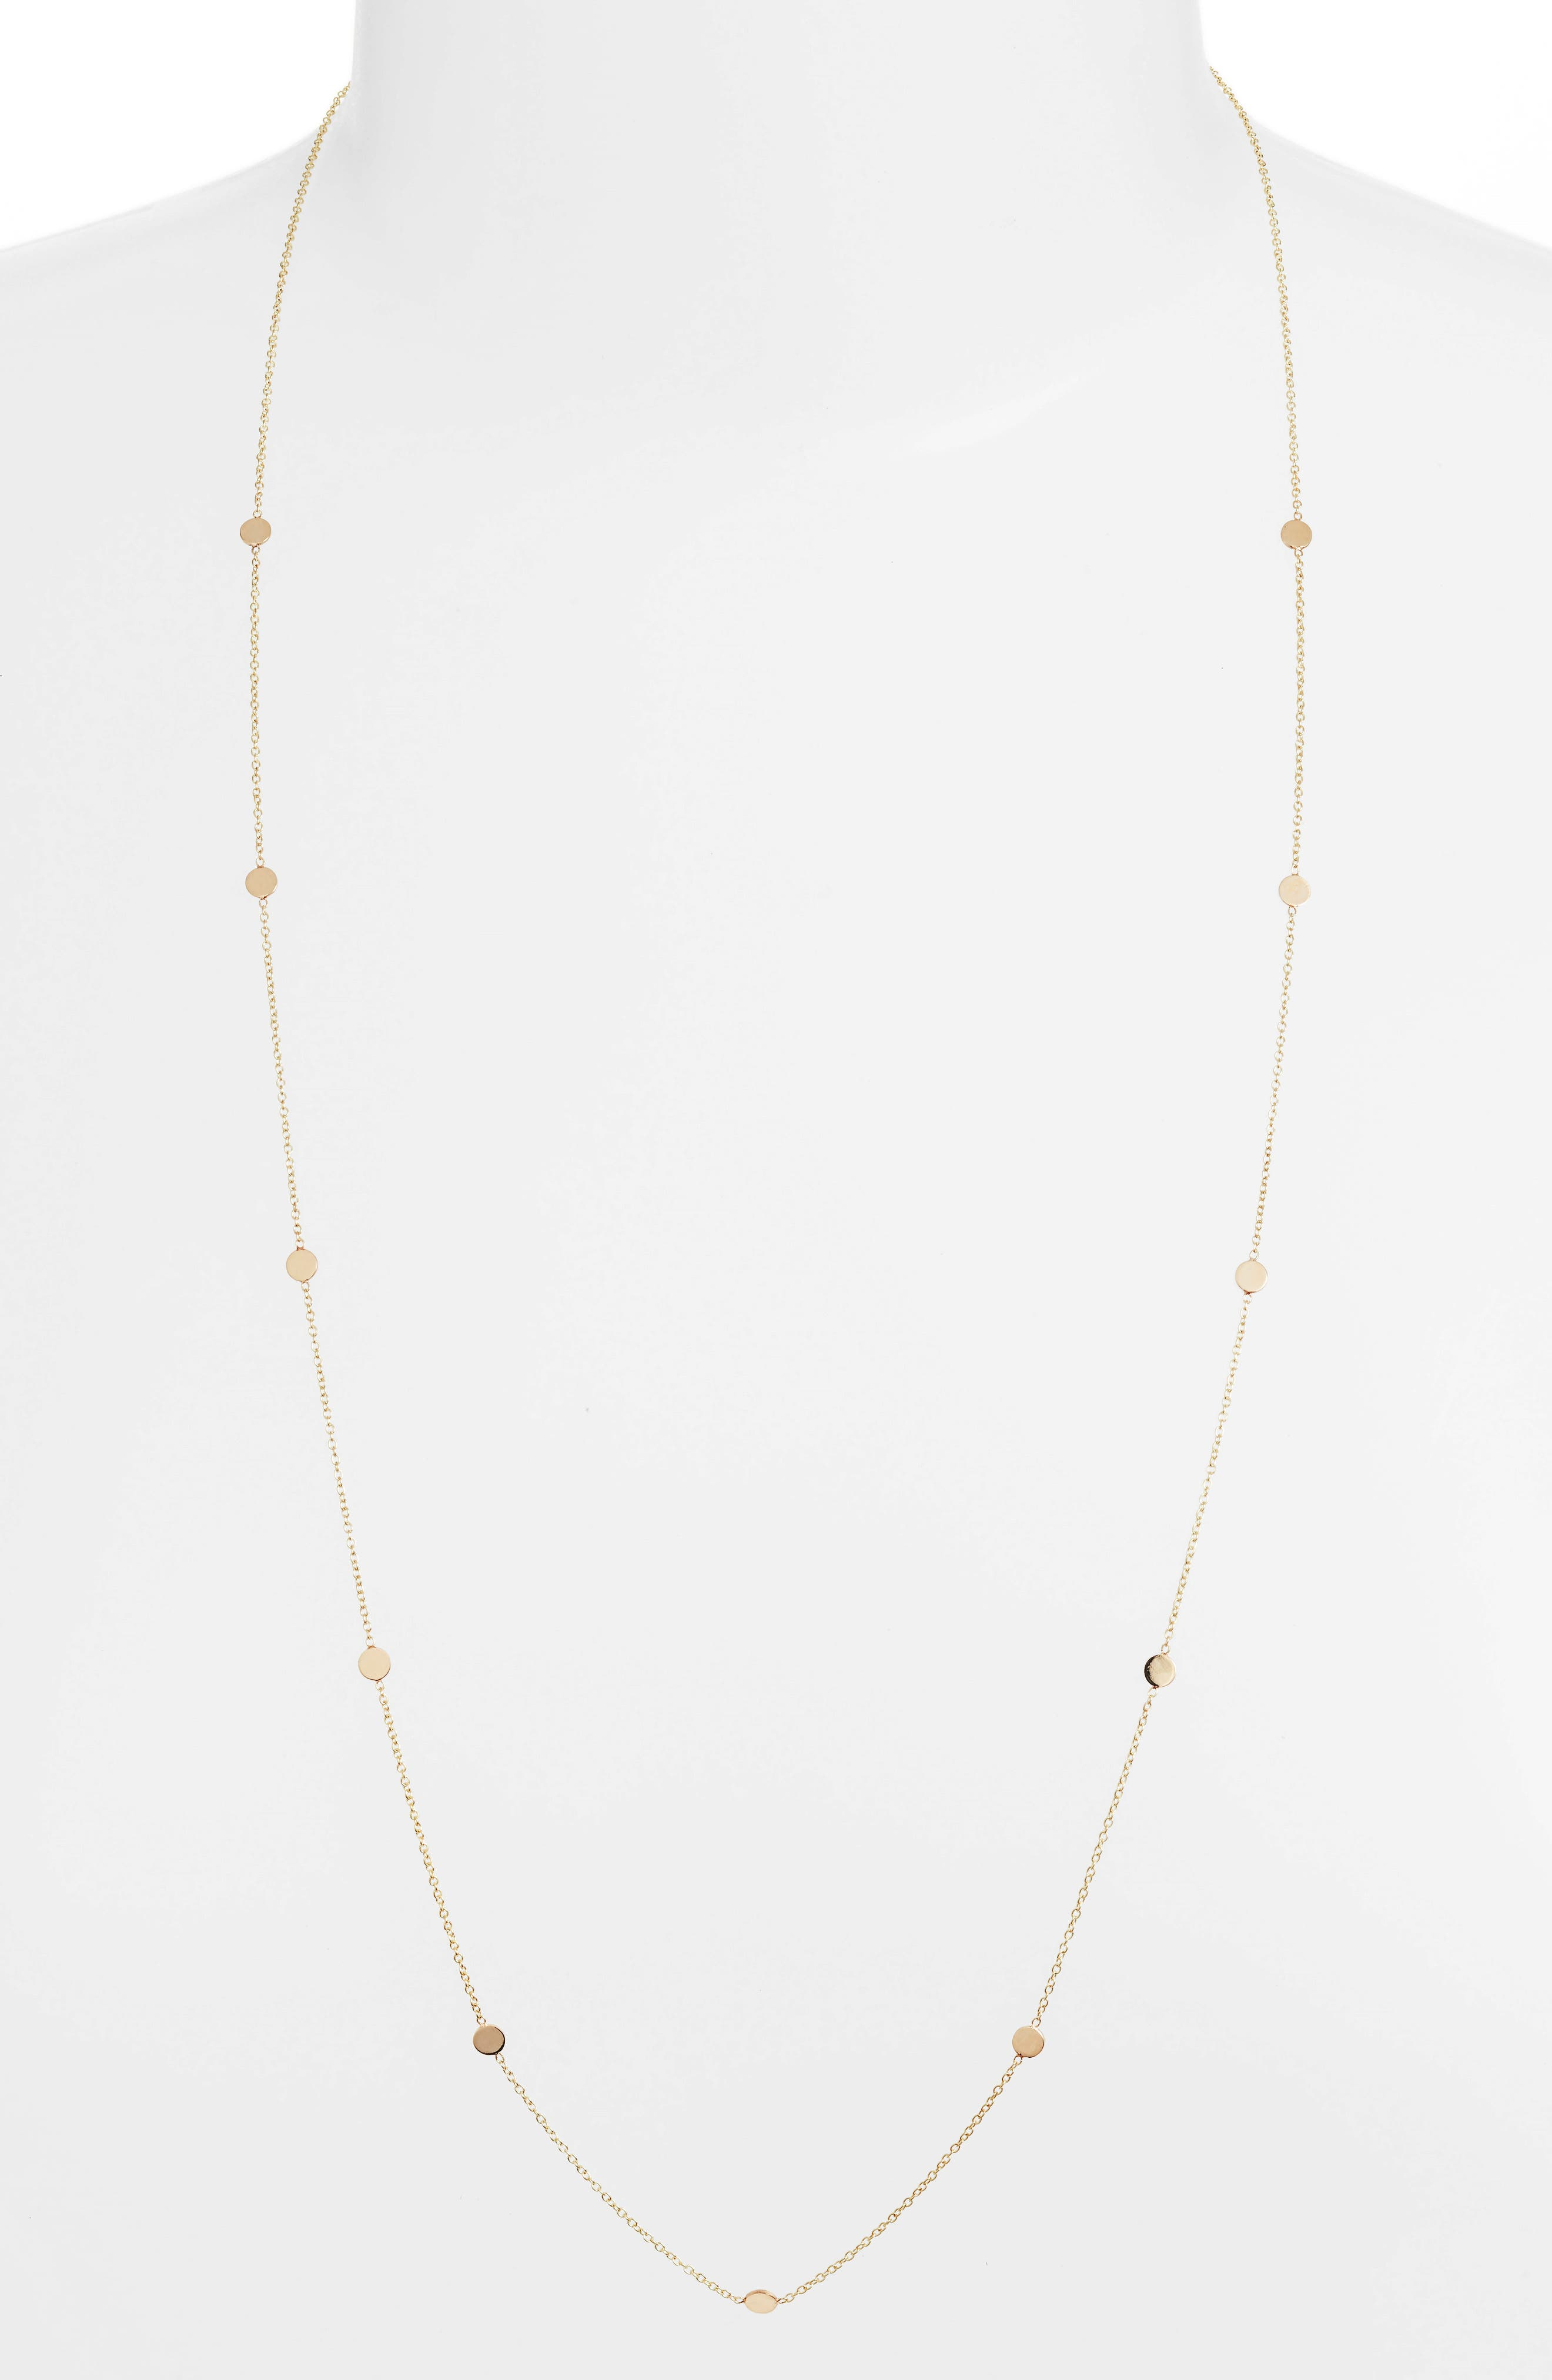 Itty Bitty Round Disc Station Necklace,                         Main,                         color, YELLOW GOLD